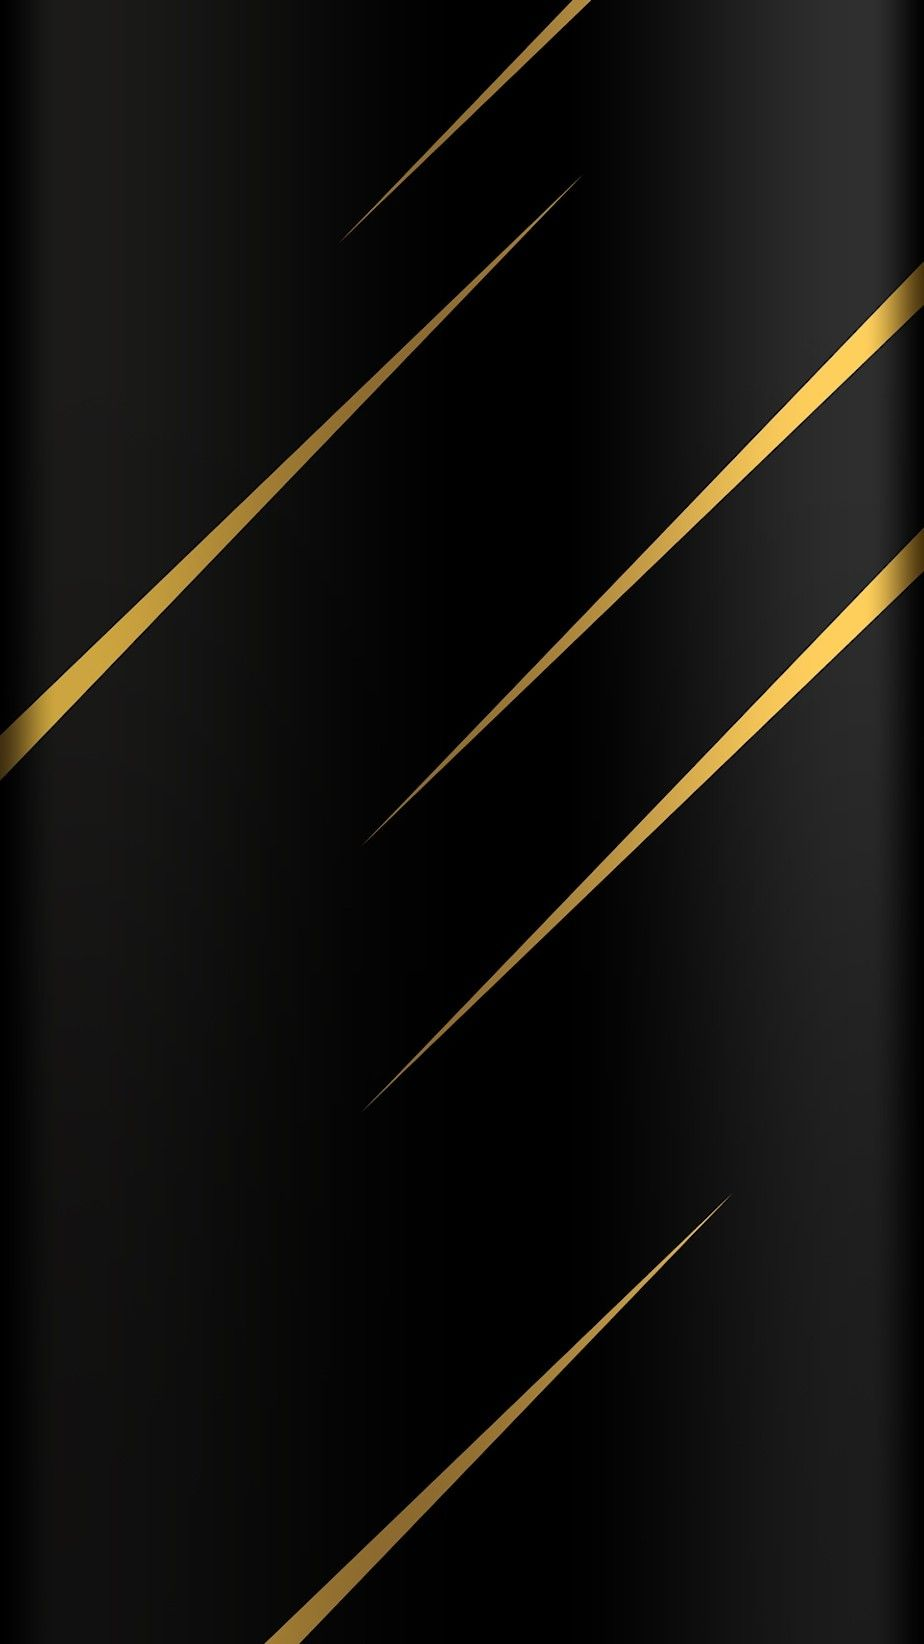 Black And Gold Hd Wallpaper Floweryred2com